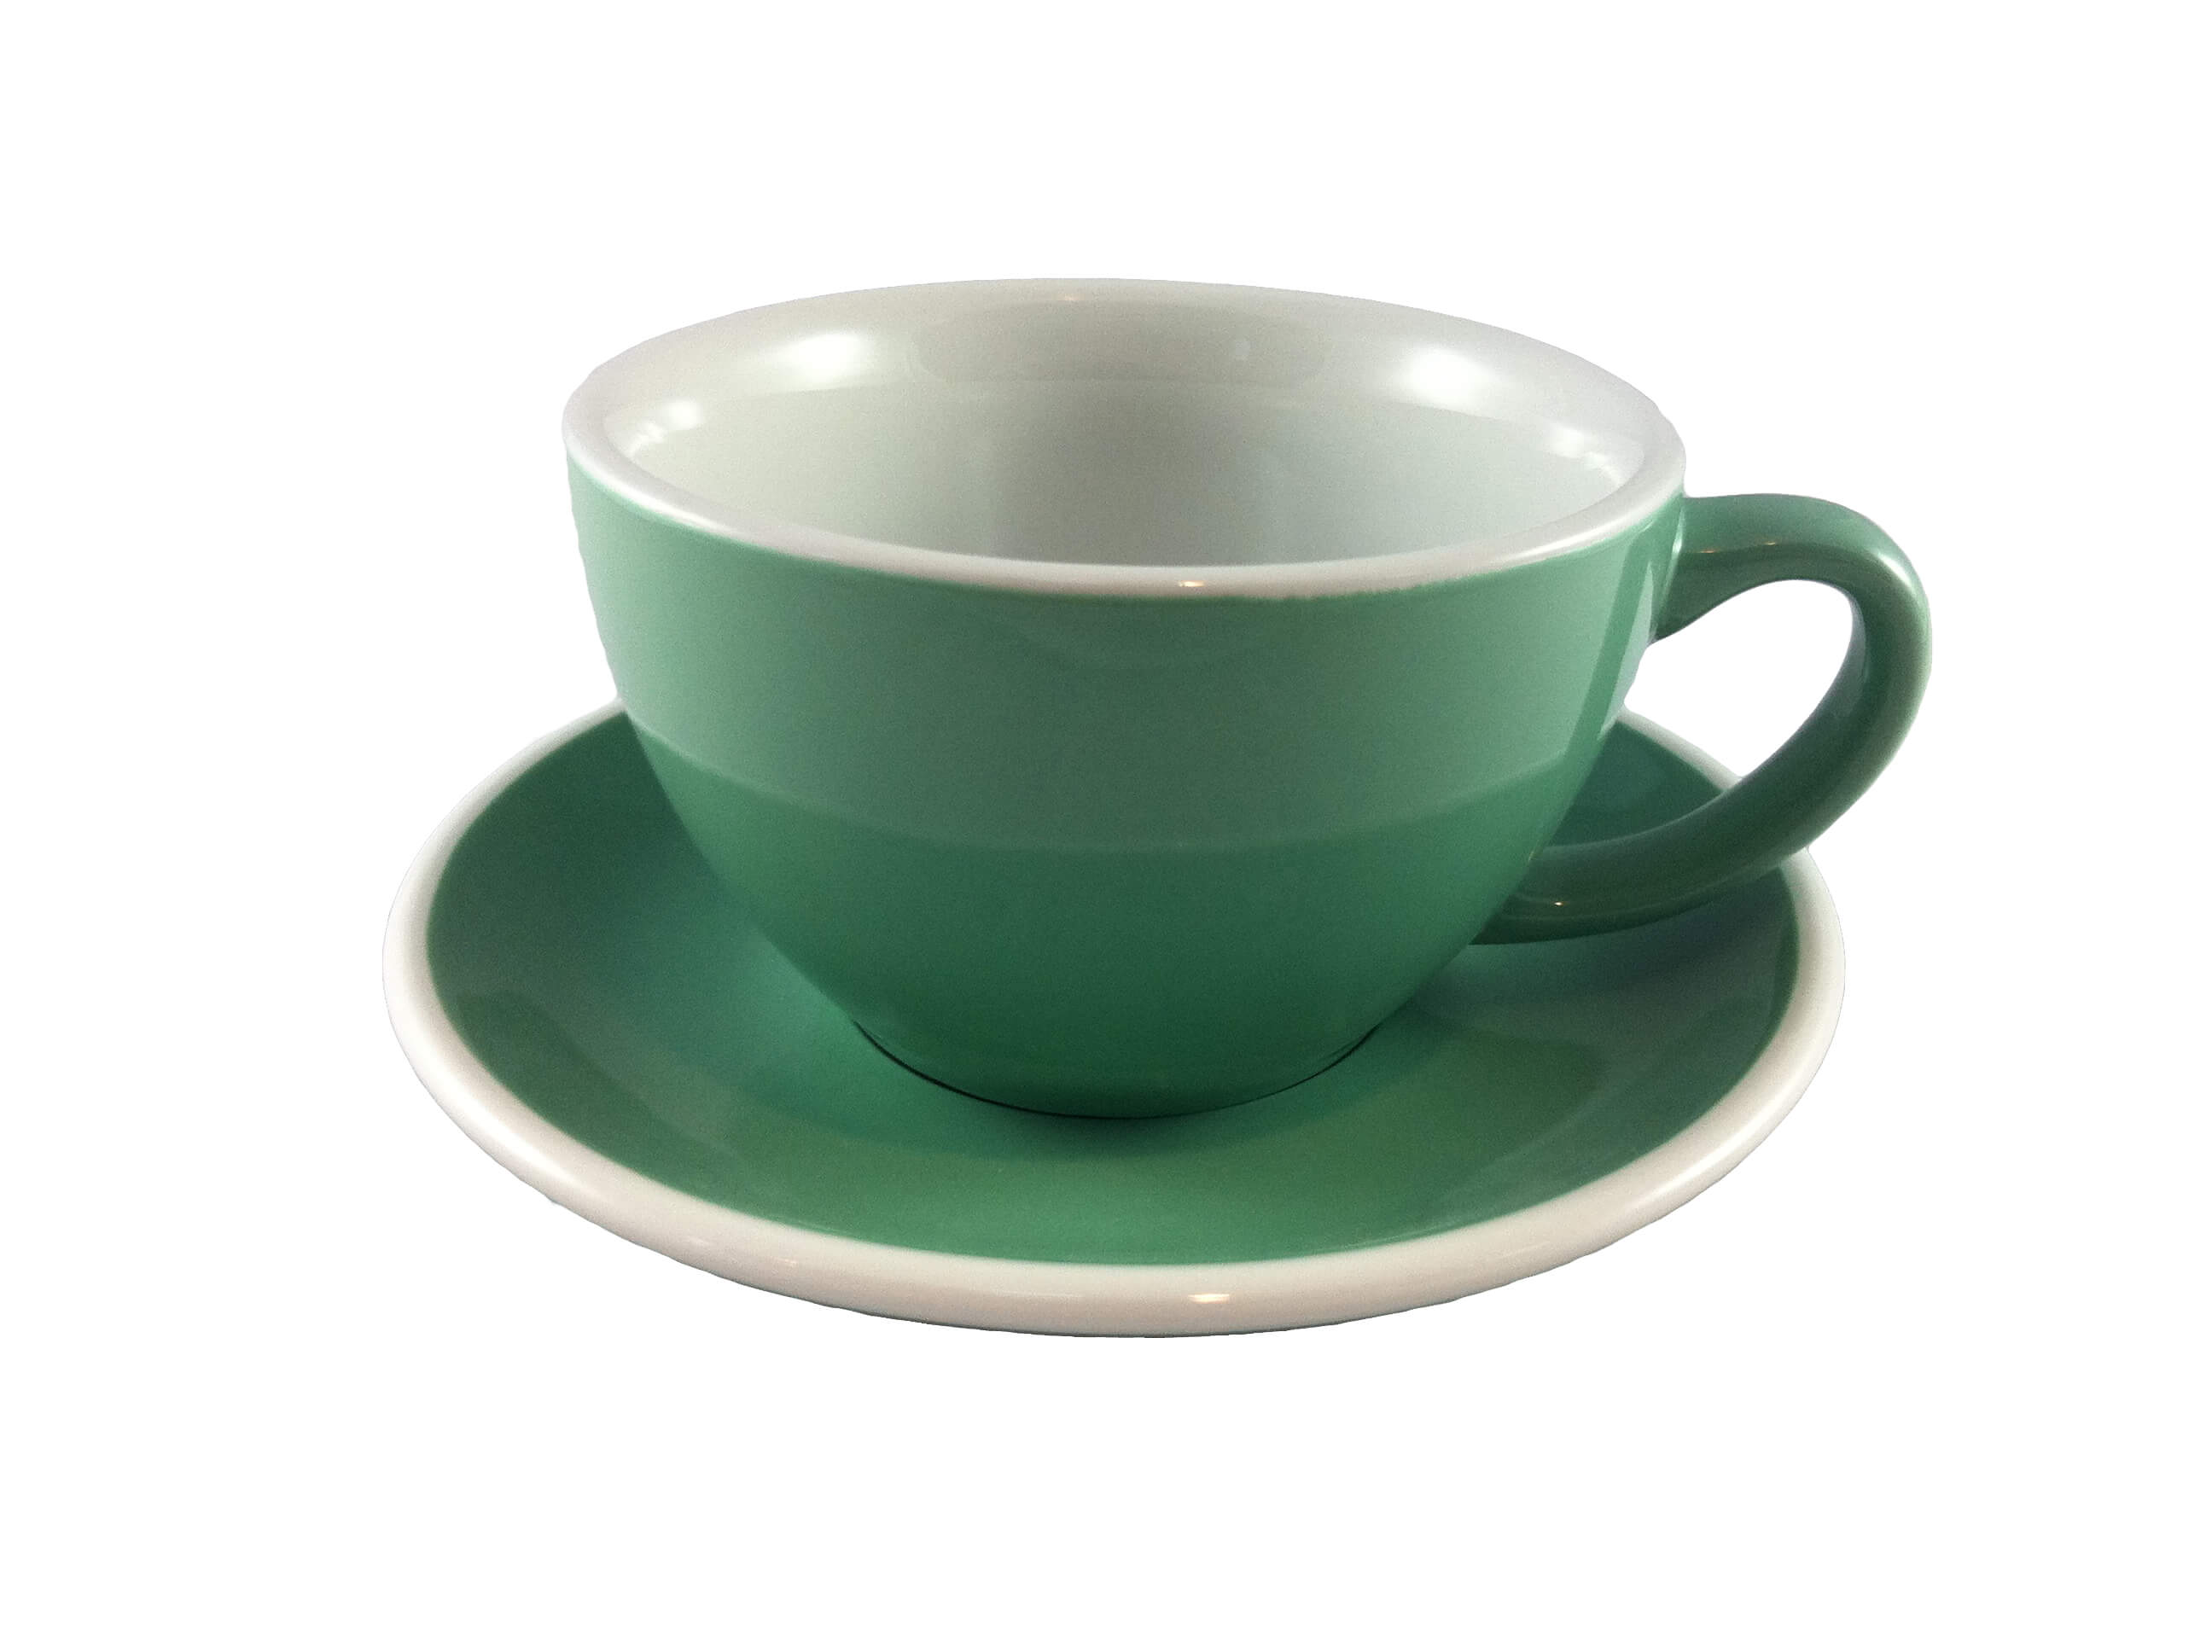 Acme Green Latte Cup & Saucer Set of 6